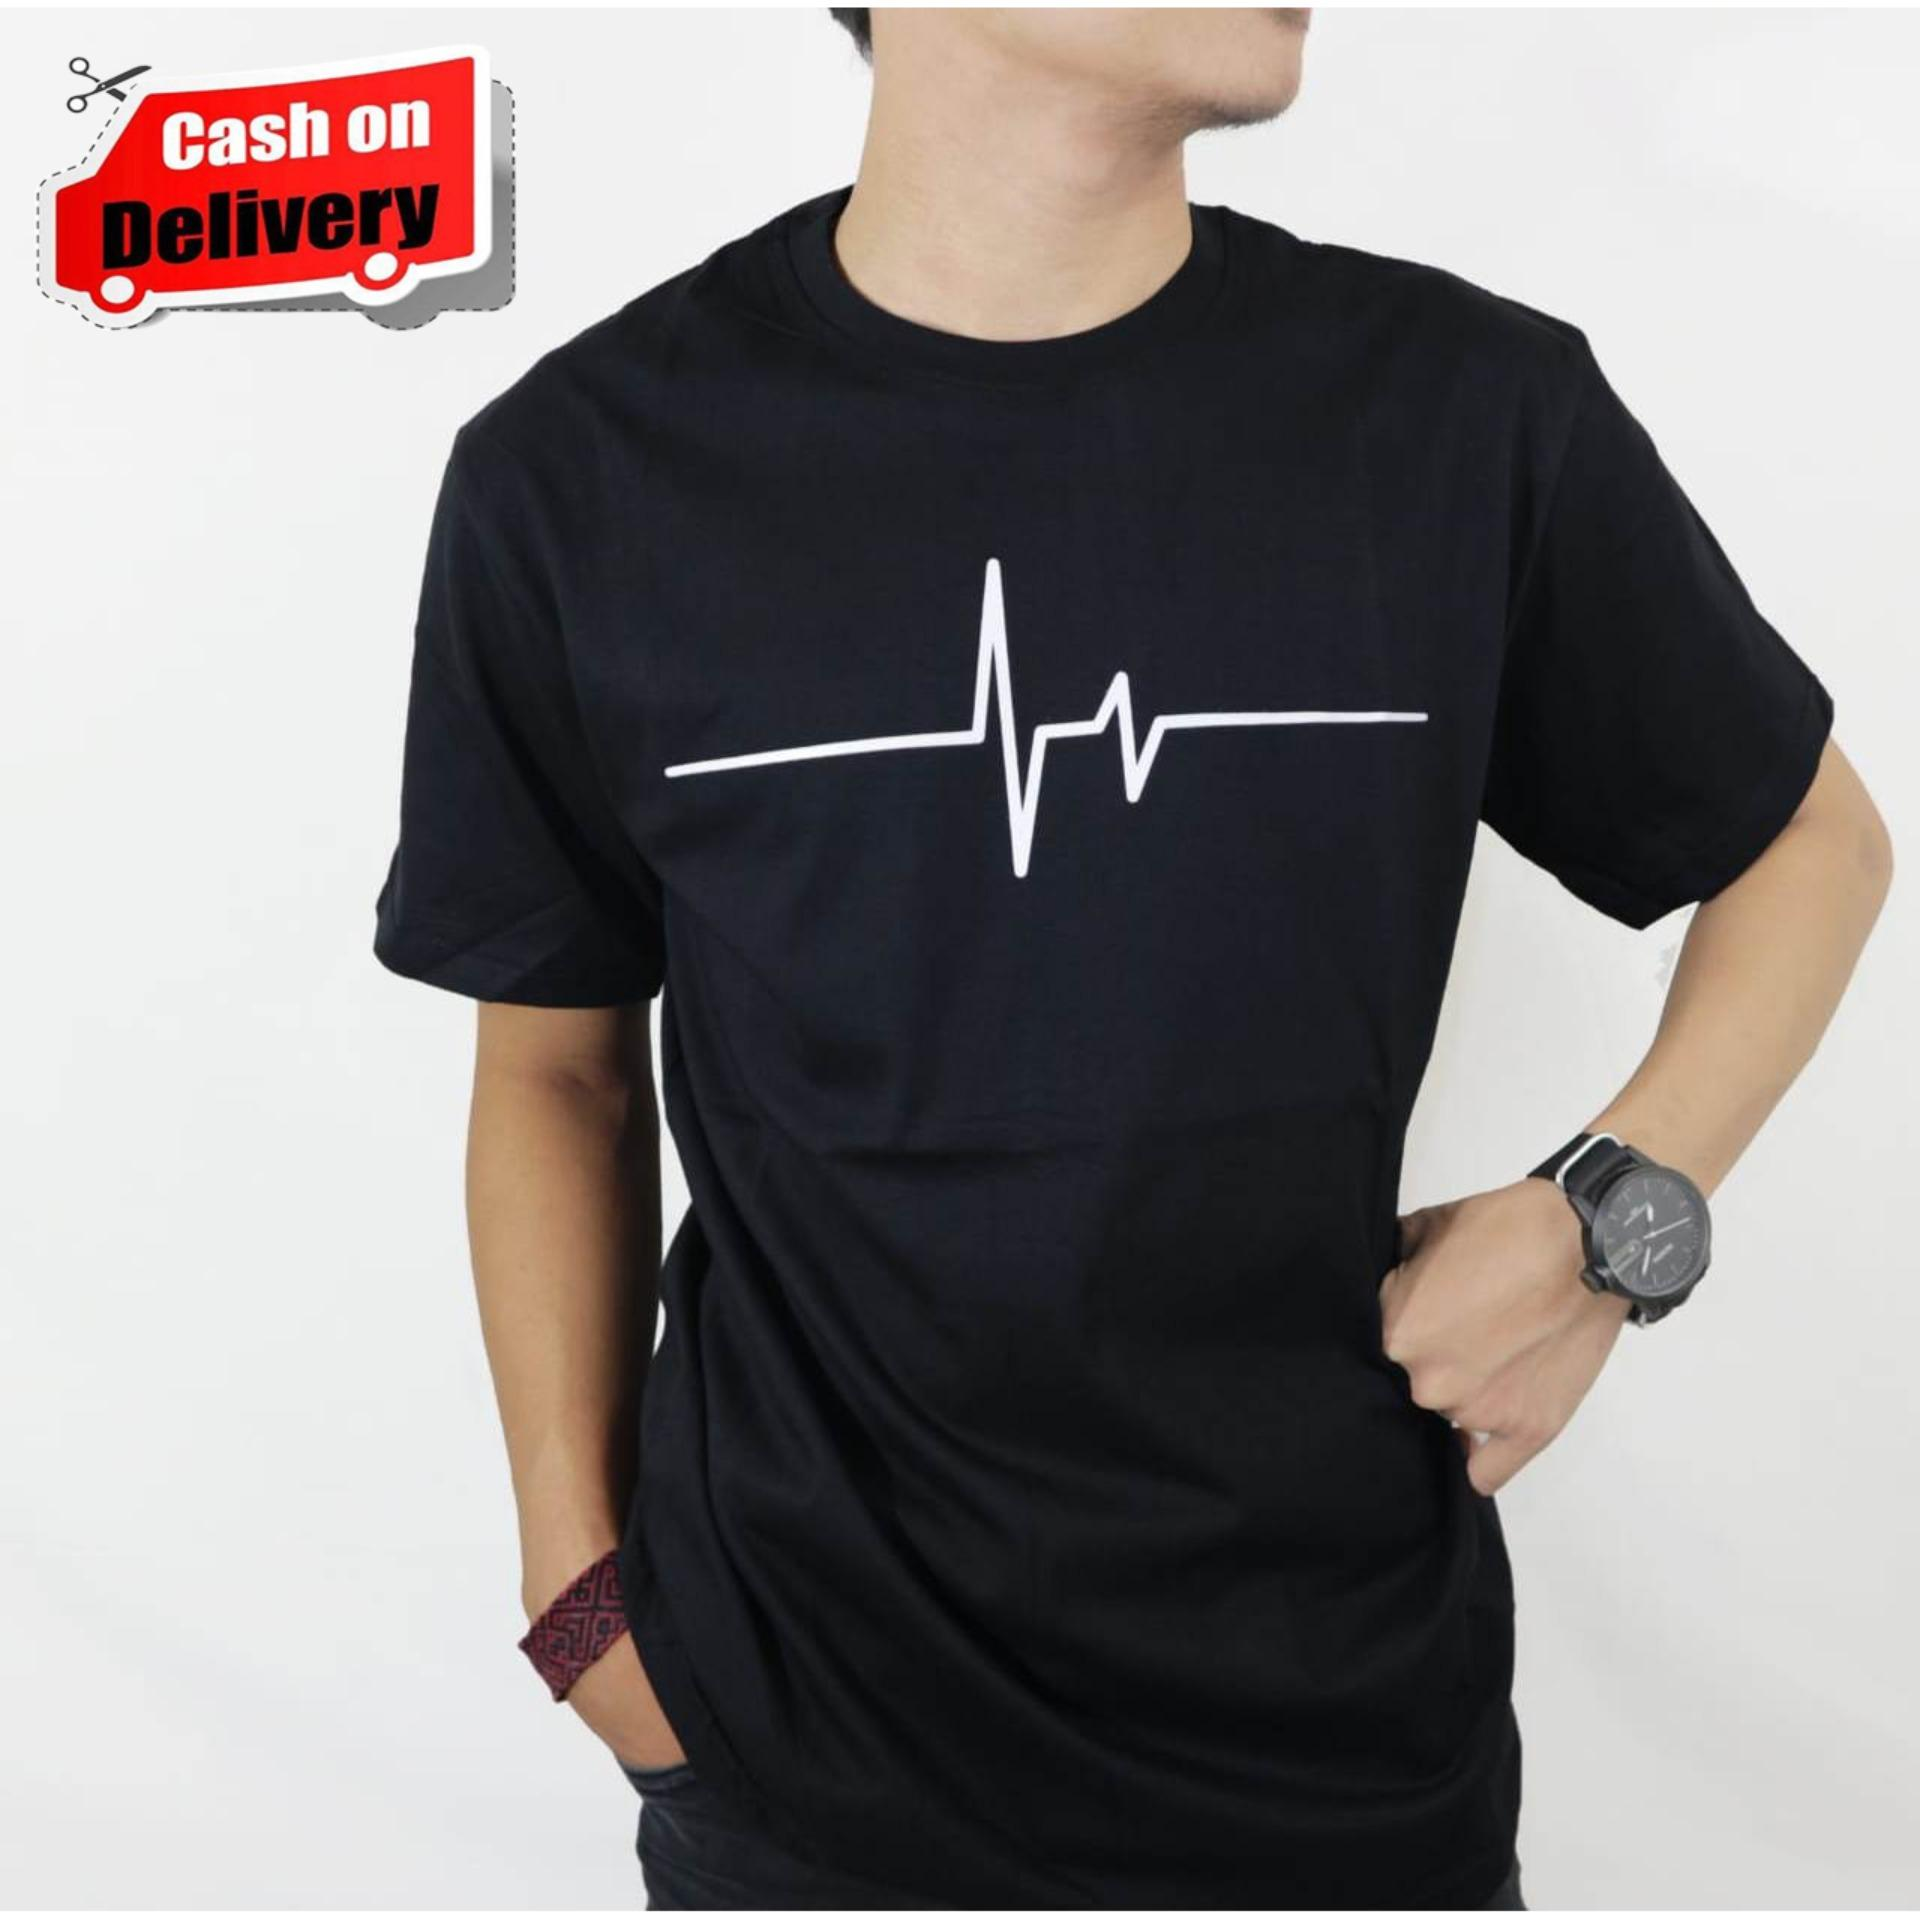 Presiden Fashion - kaos distro T-shirt fashion 100% soft cotton combed 30s  kaos 2c0ce3147f